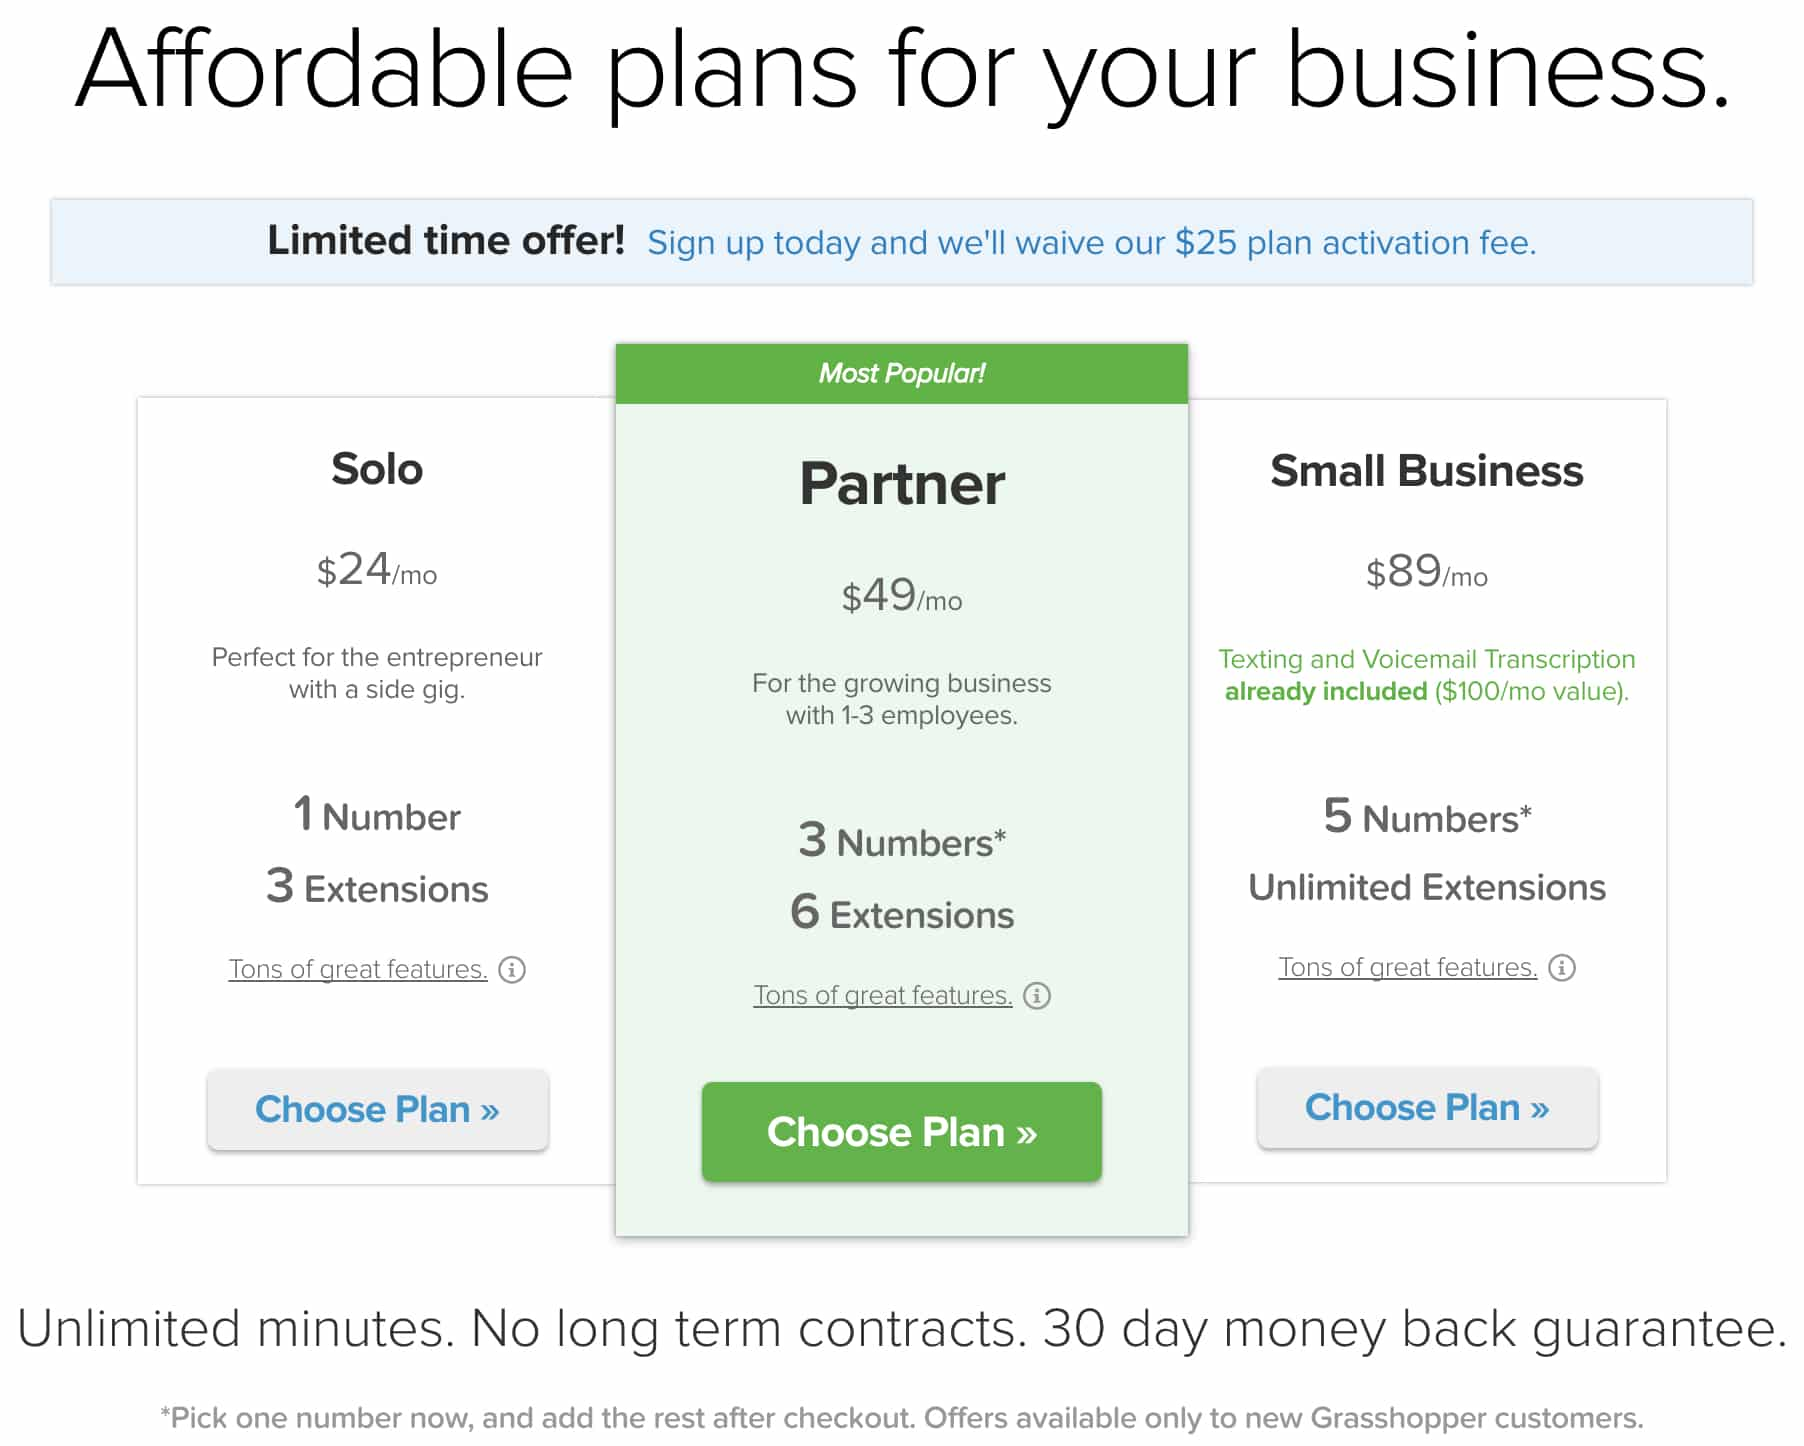 A comparison of Grasshopper's phone service plans with pricing and featuresets.